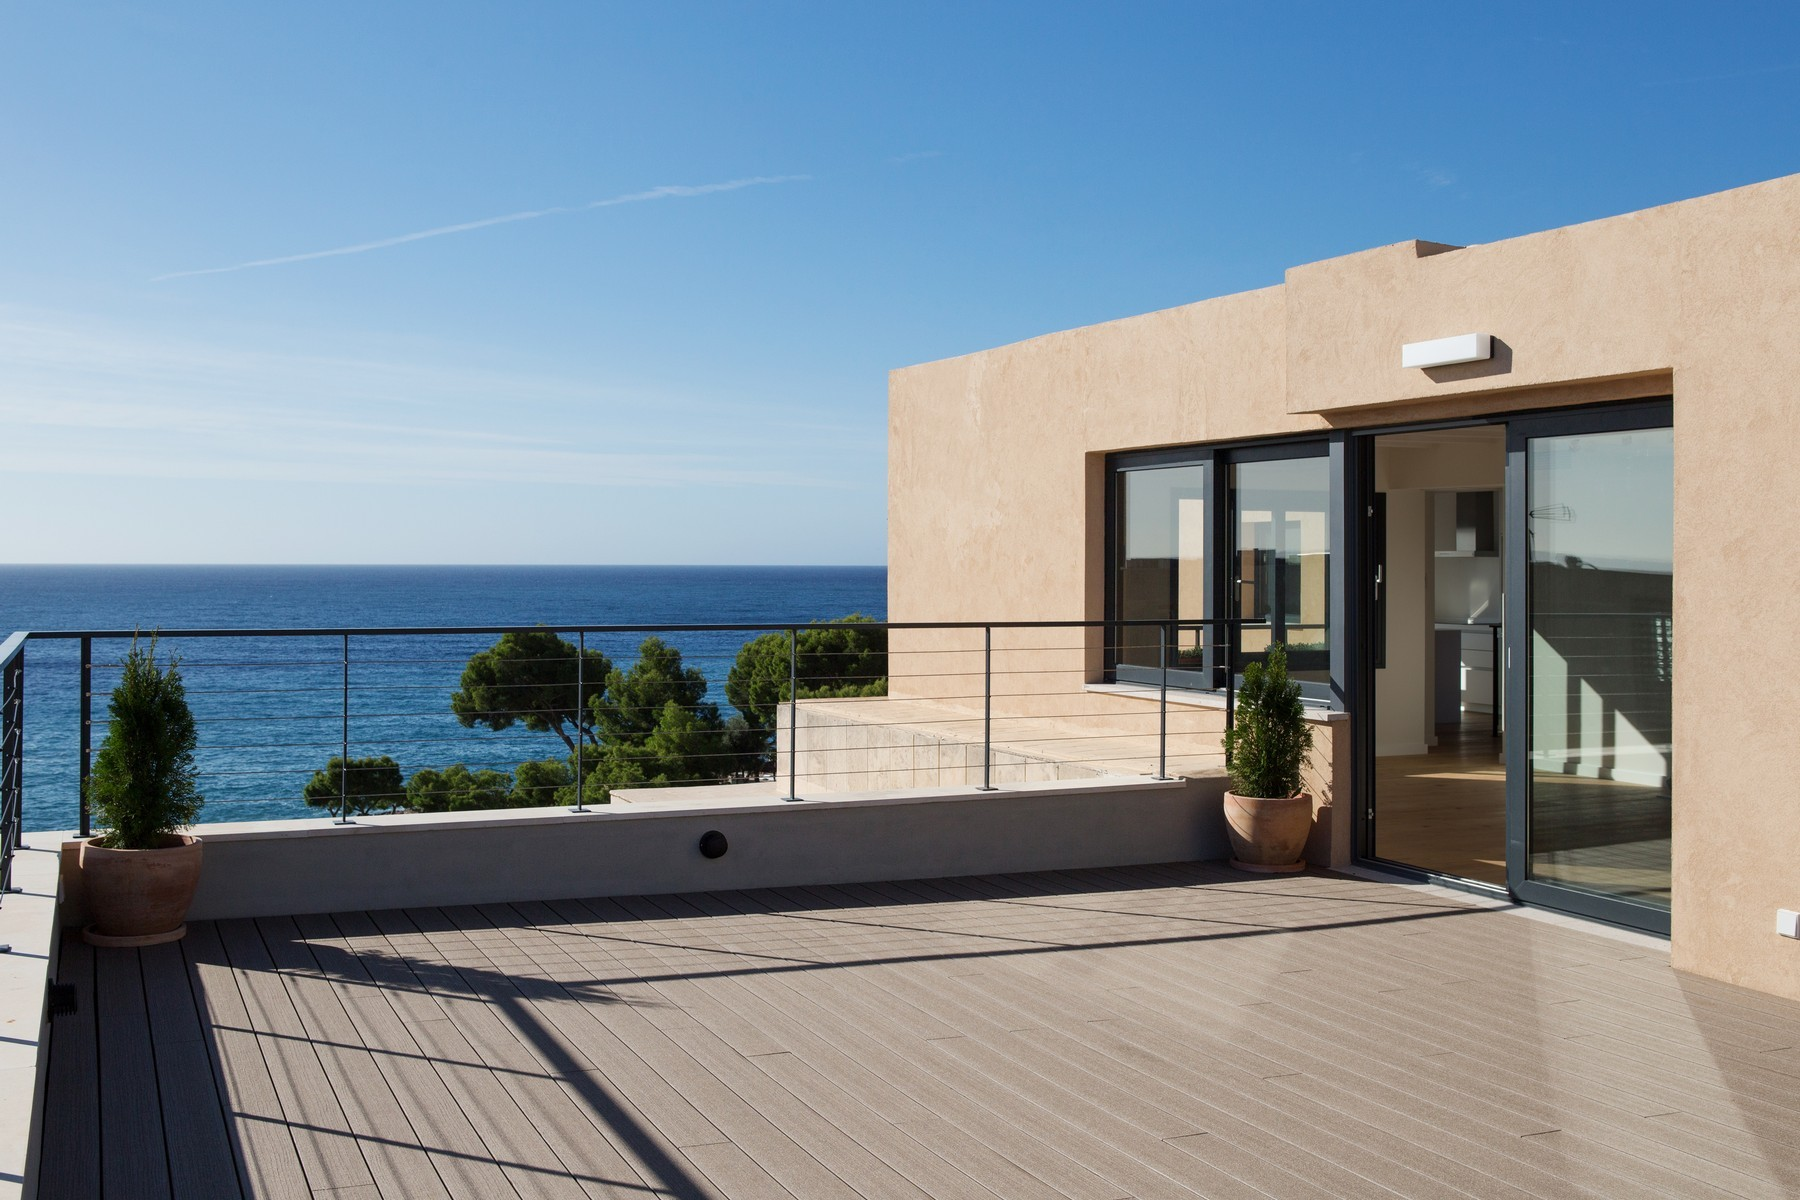 Apartment for Sale at Modern penthouse with sea access in Illetas Bendinat, Mallorca, 07180 Spain